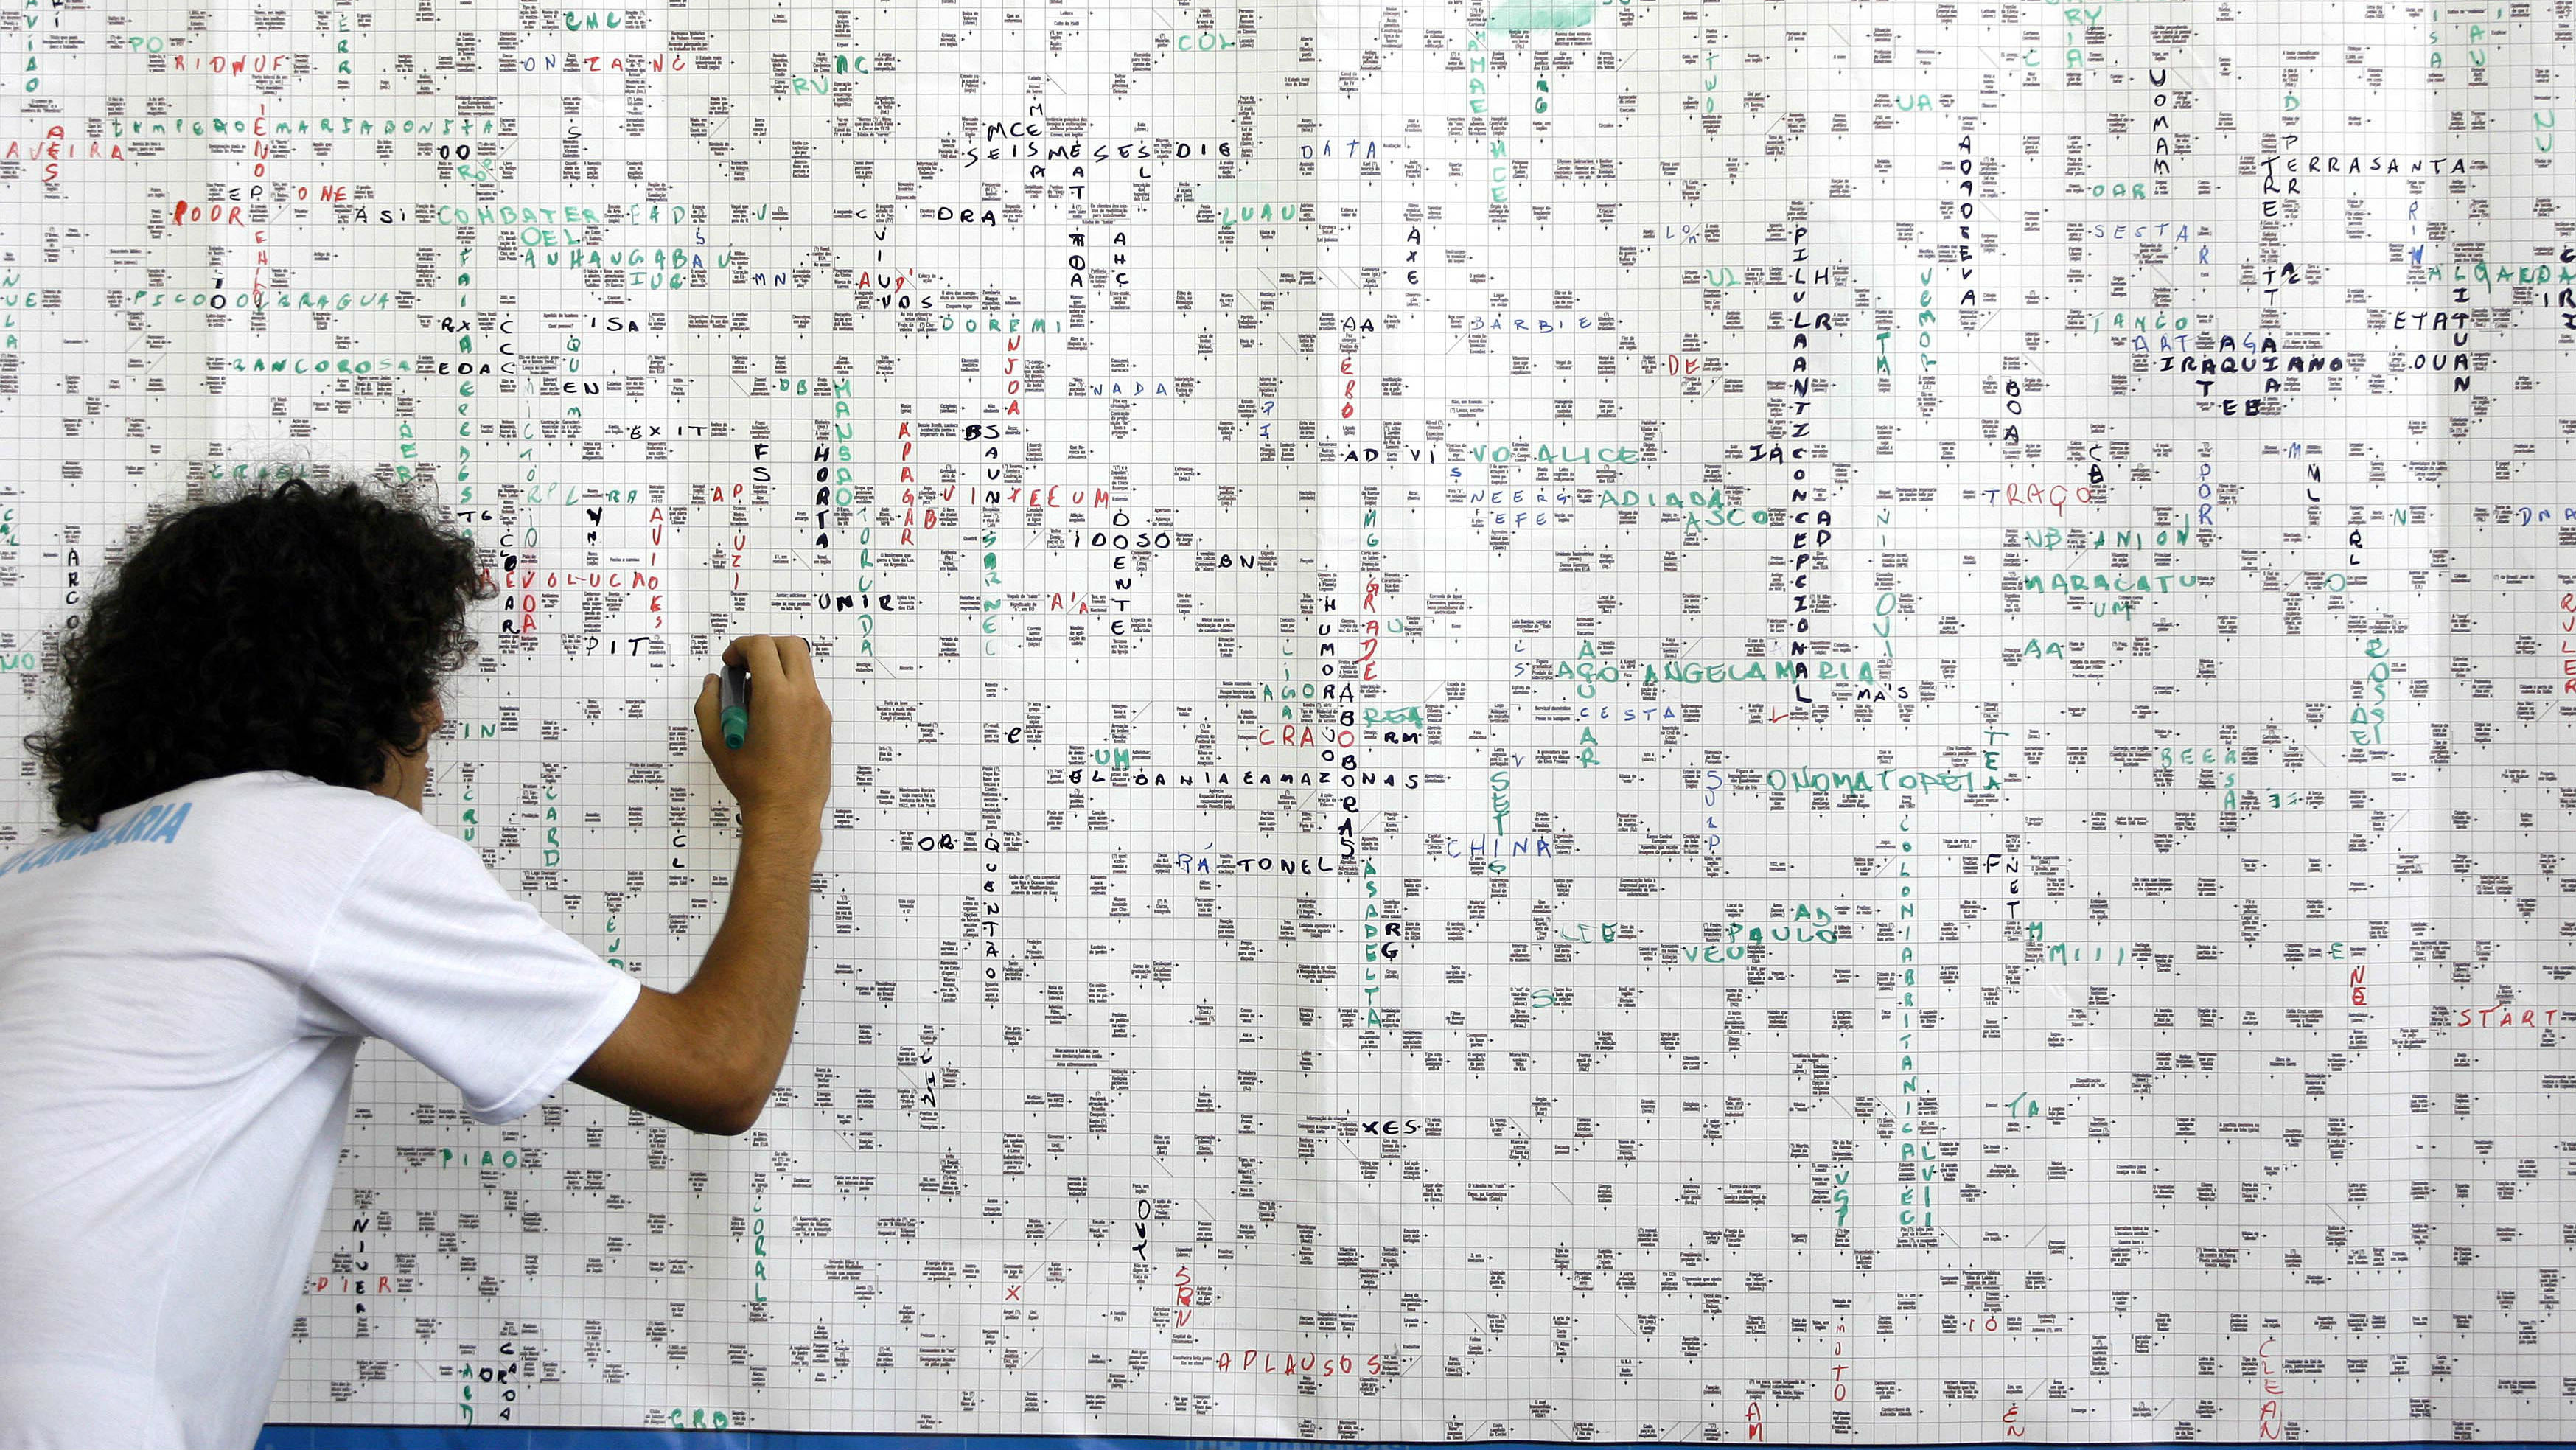 A visitor writes in a giant crossword displayed during Sao Paulo's Book Biennal, on Thursday, March 9, 2006. The crossword is 3.25 meters wide (10.66 feet) and 1.5 meters in height (4.92 feet) and contains 3,200 quizes. The creators, Ediouro publishing, will present it to the Guinness organization to be considered as the world's largest crossword puzzle.